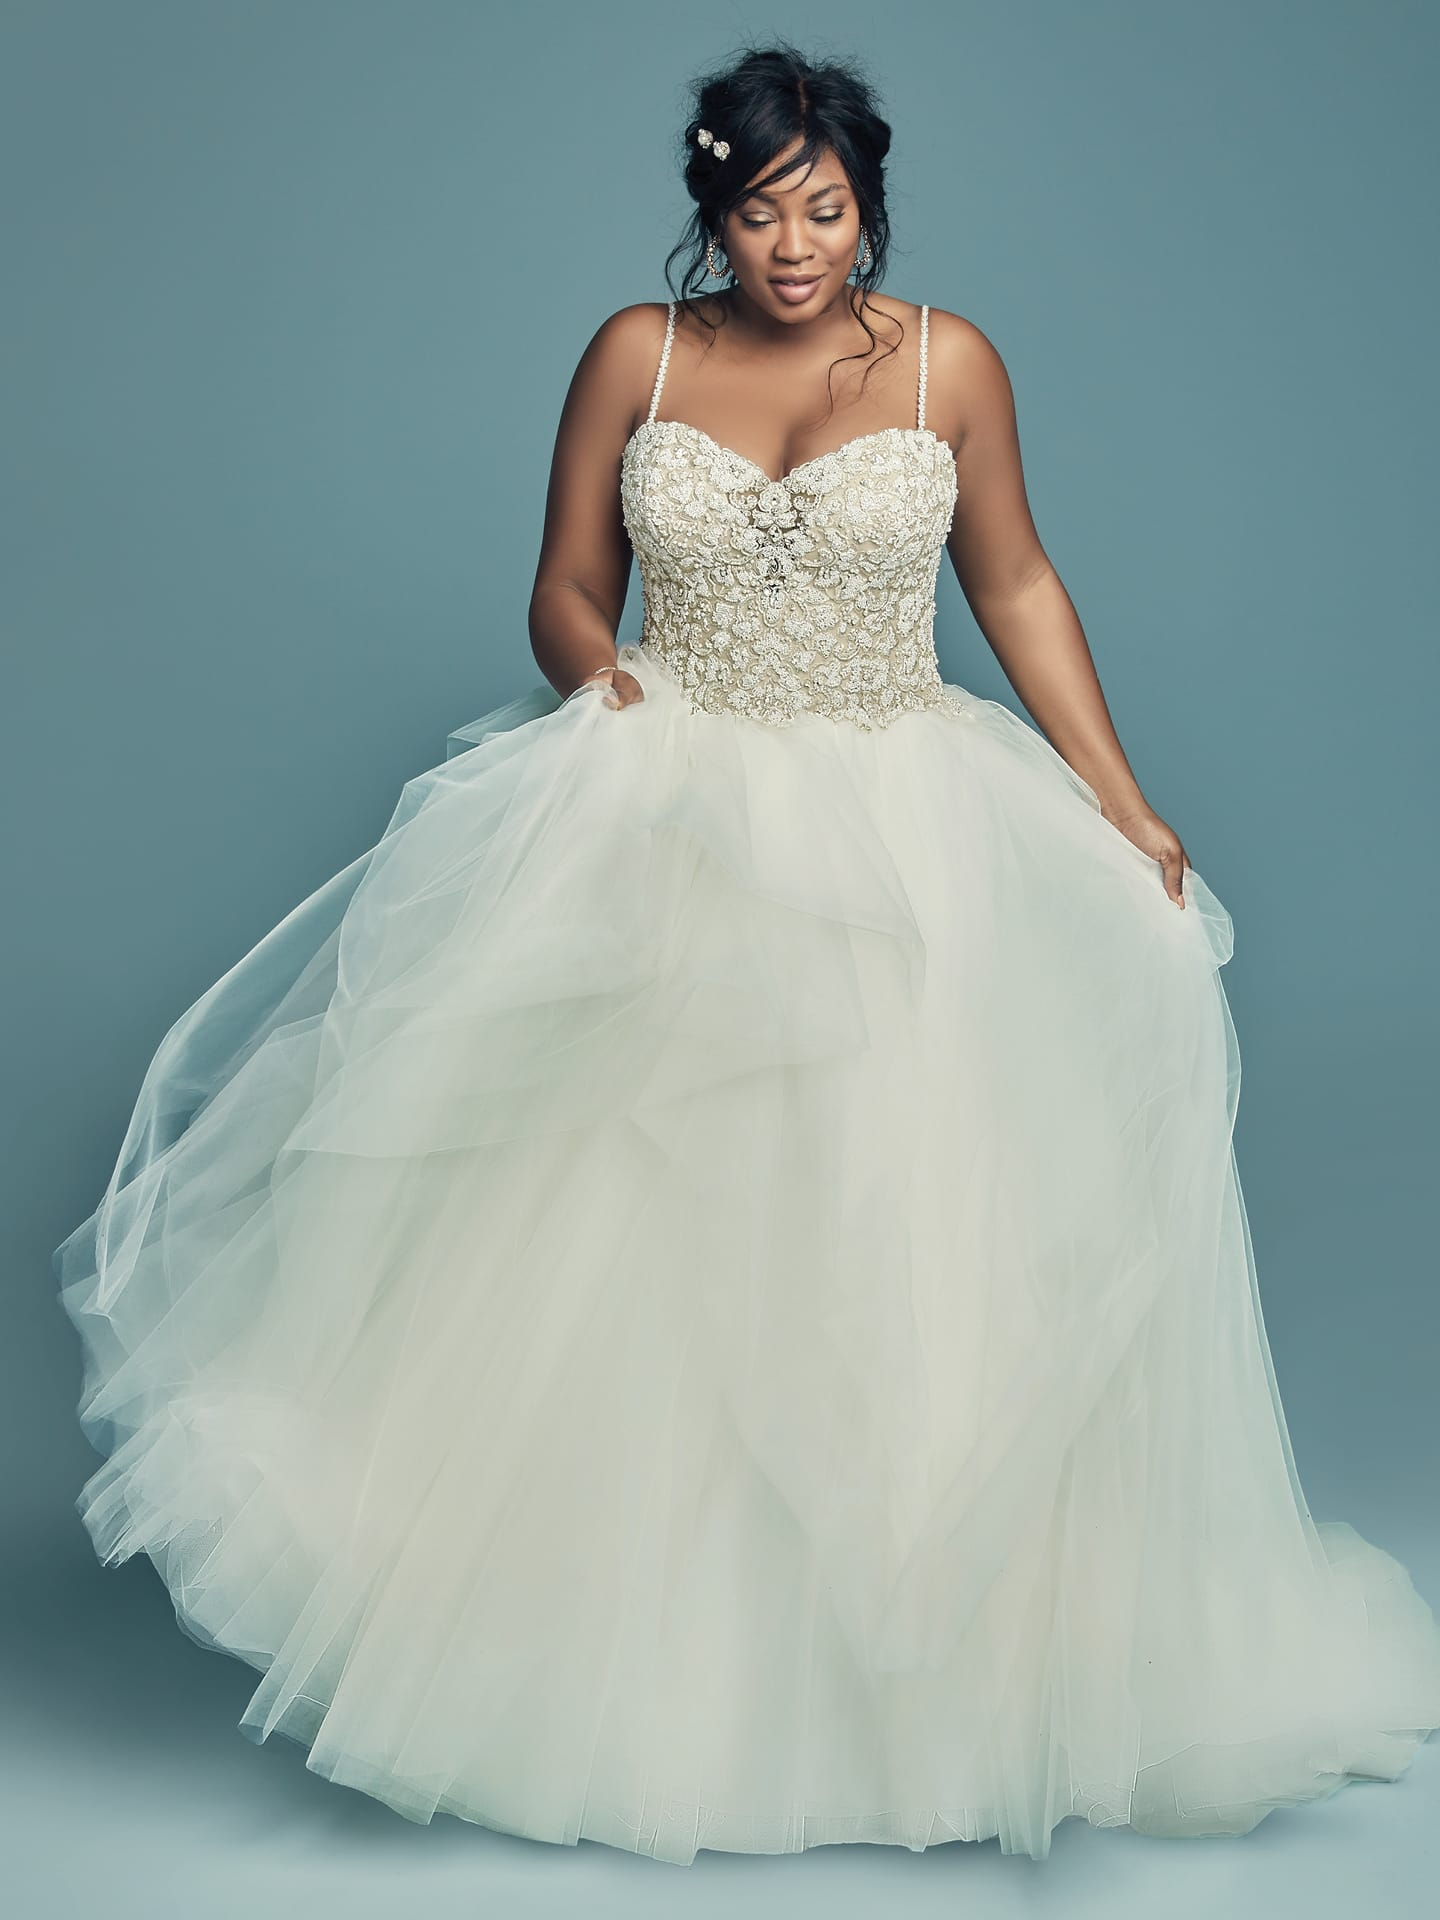 Flattering Wedding Dresses for Curvy Brides - Shauna Lynette by Maggie Sottero